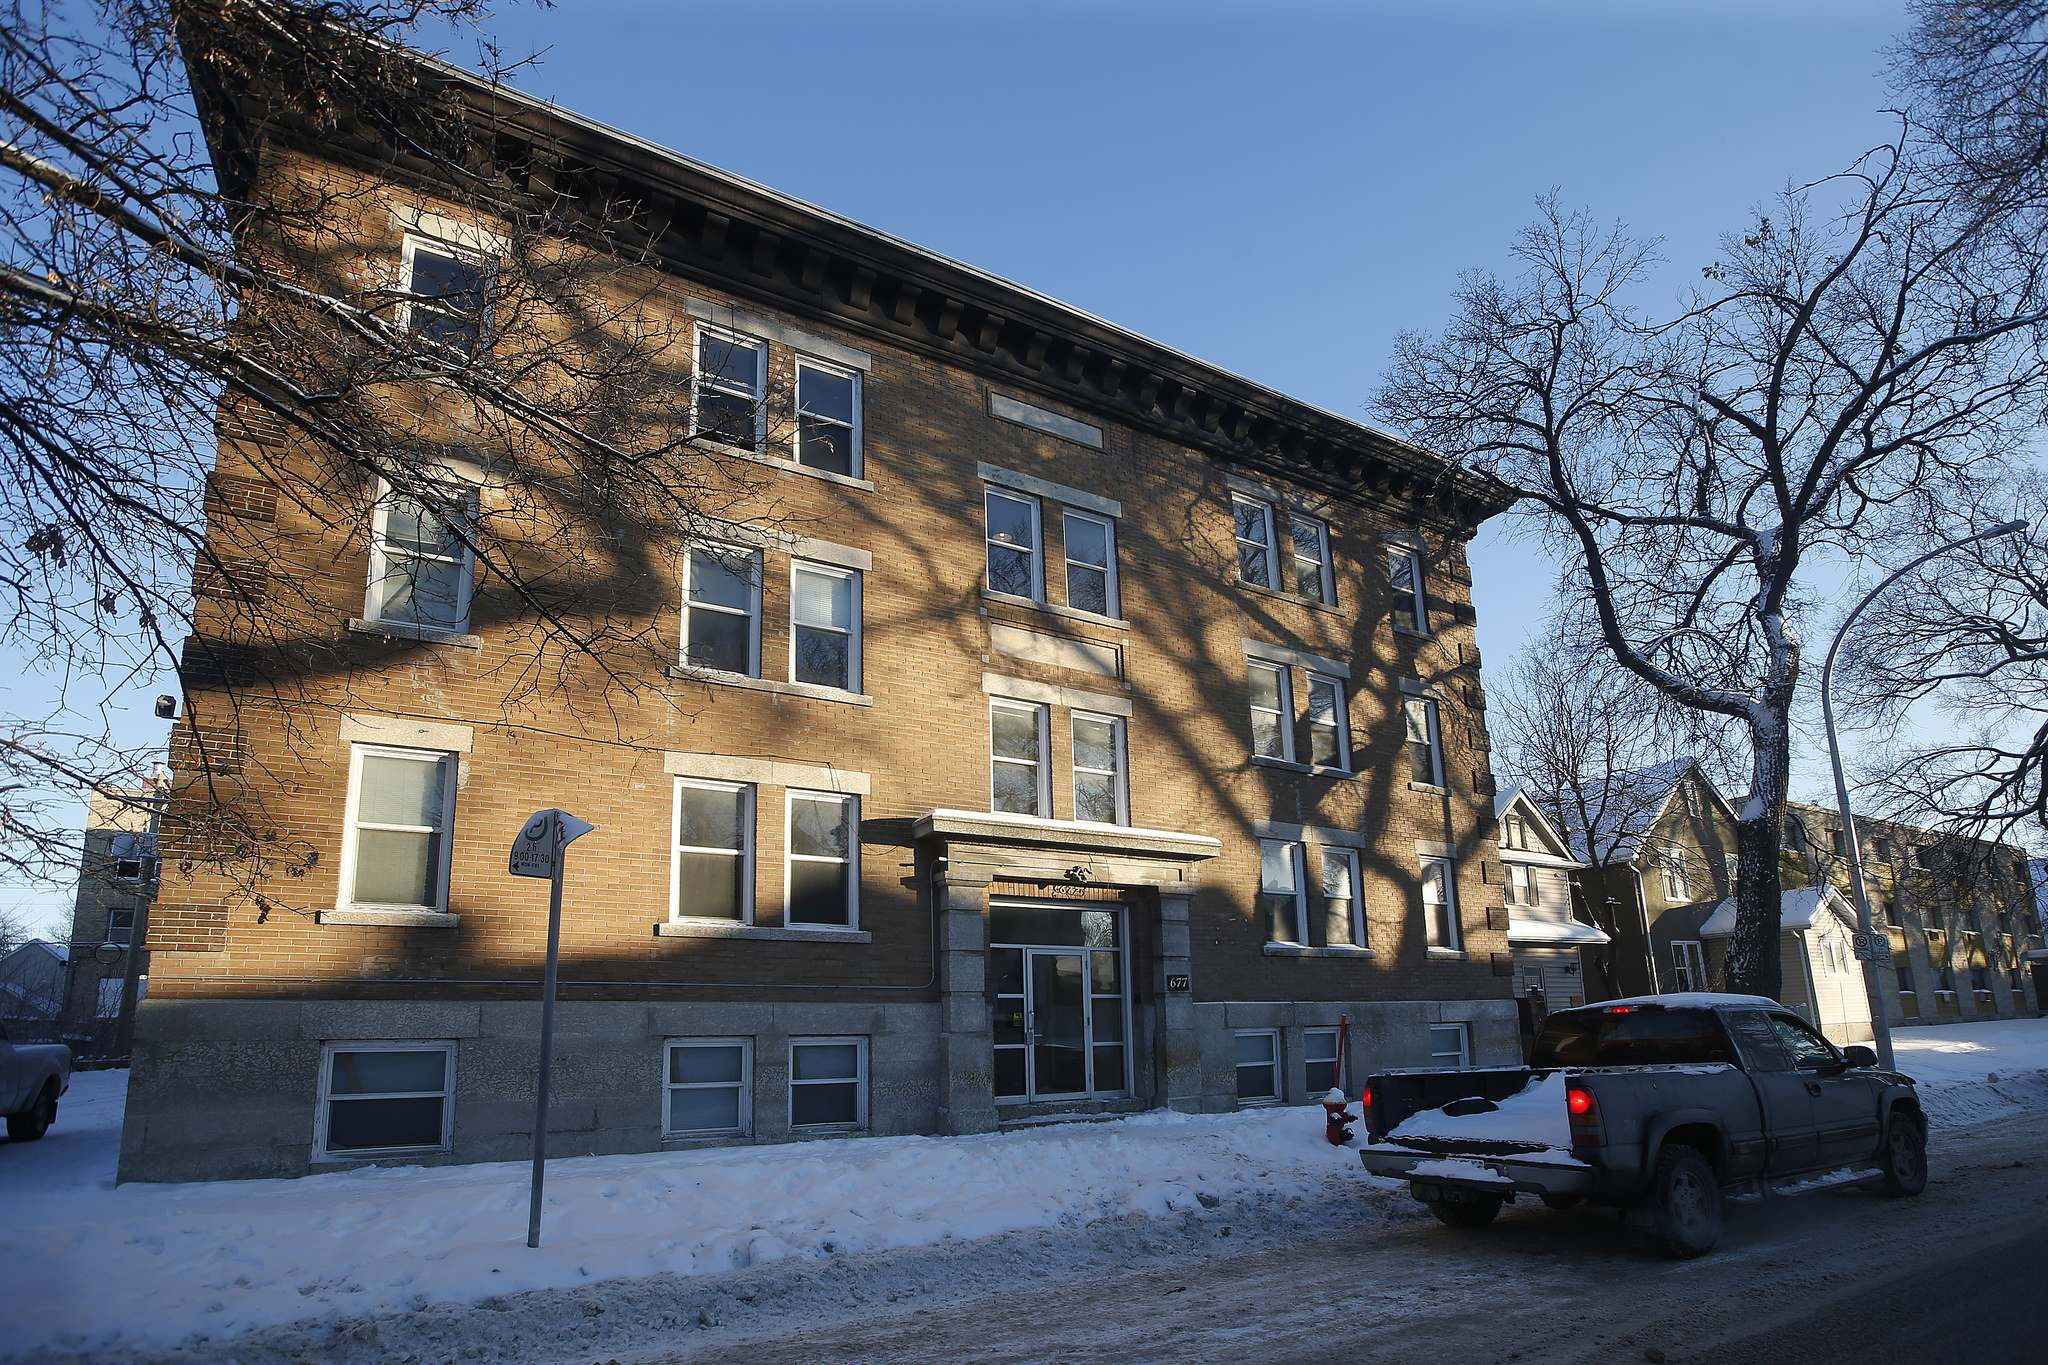 JOHN WOODS / WINNIPEG FREE PRESS</p><p>Vida Living has already begun renovating the block at 677 Maryland St.</p></p>